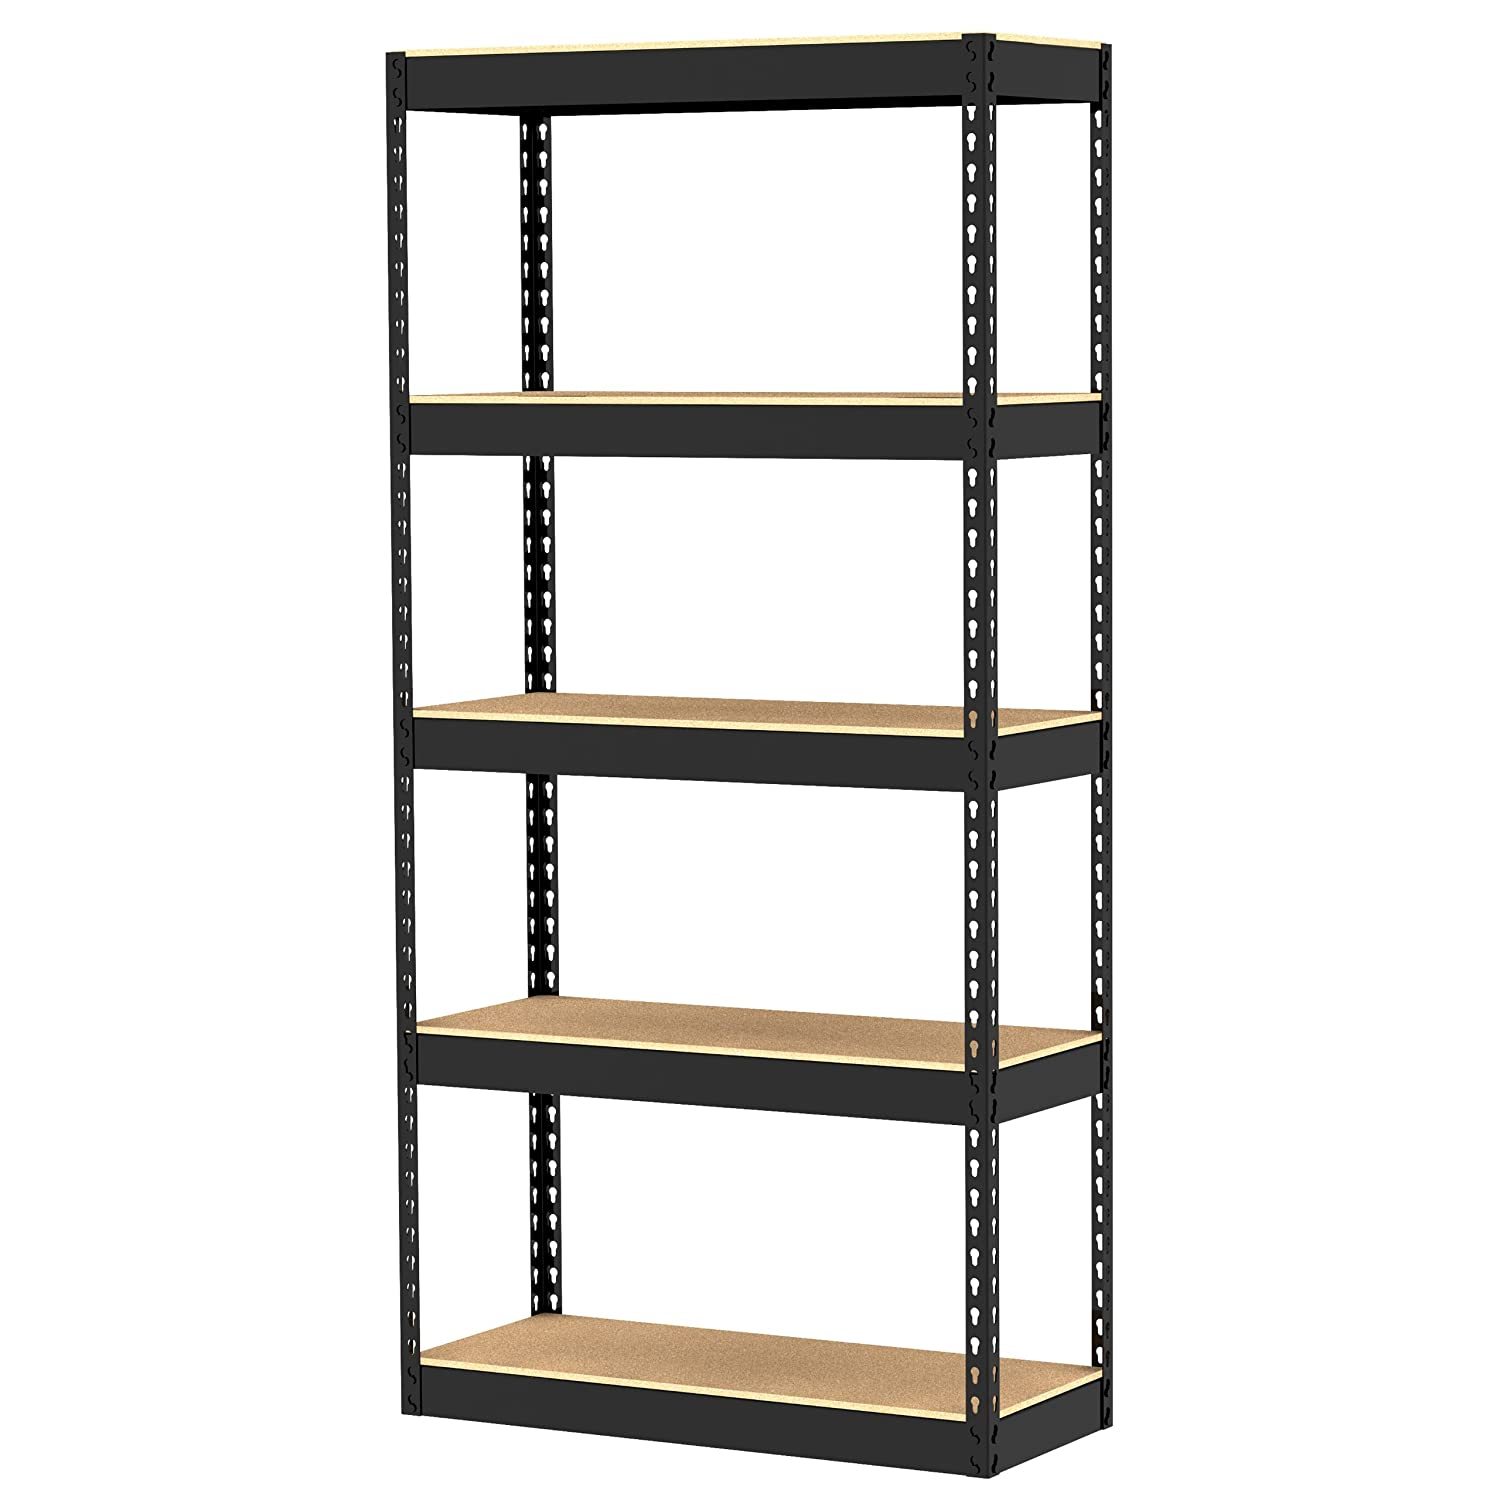 splendi racks inventory rack pallet nationwide racking full shelving size storage of industrial